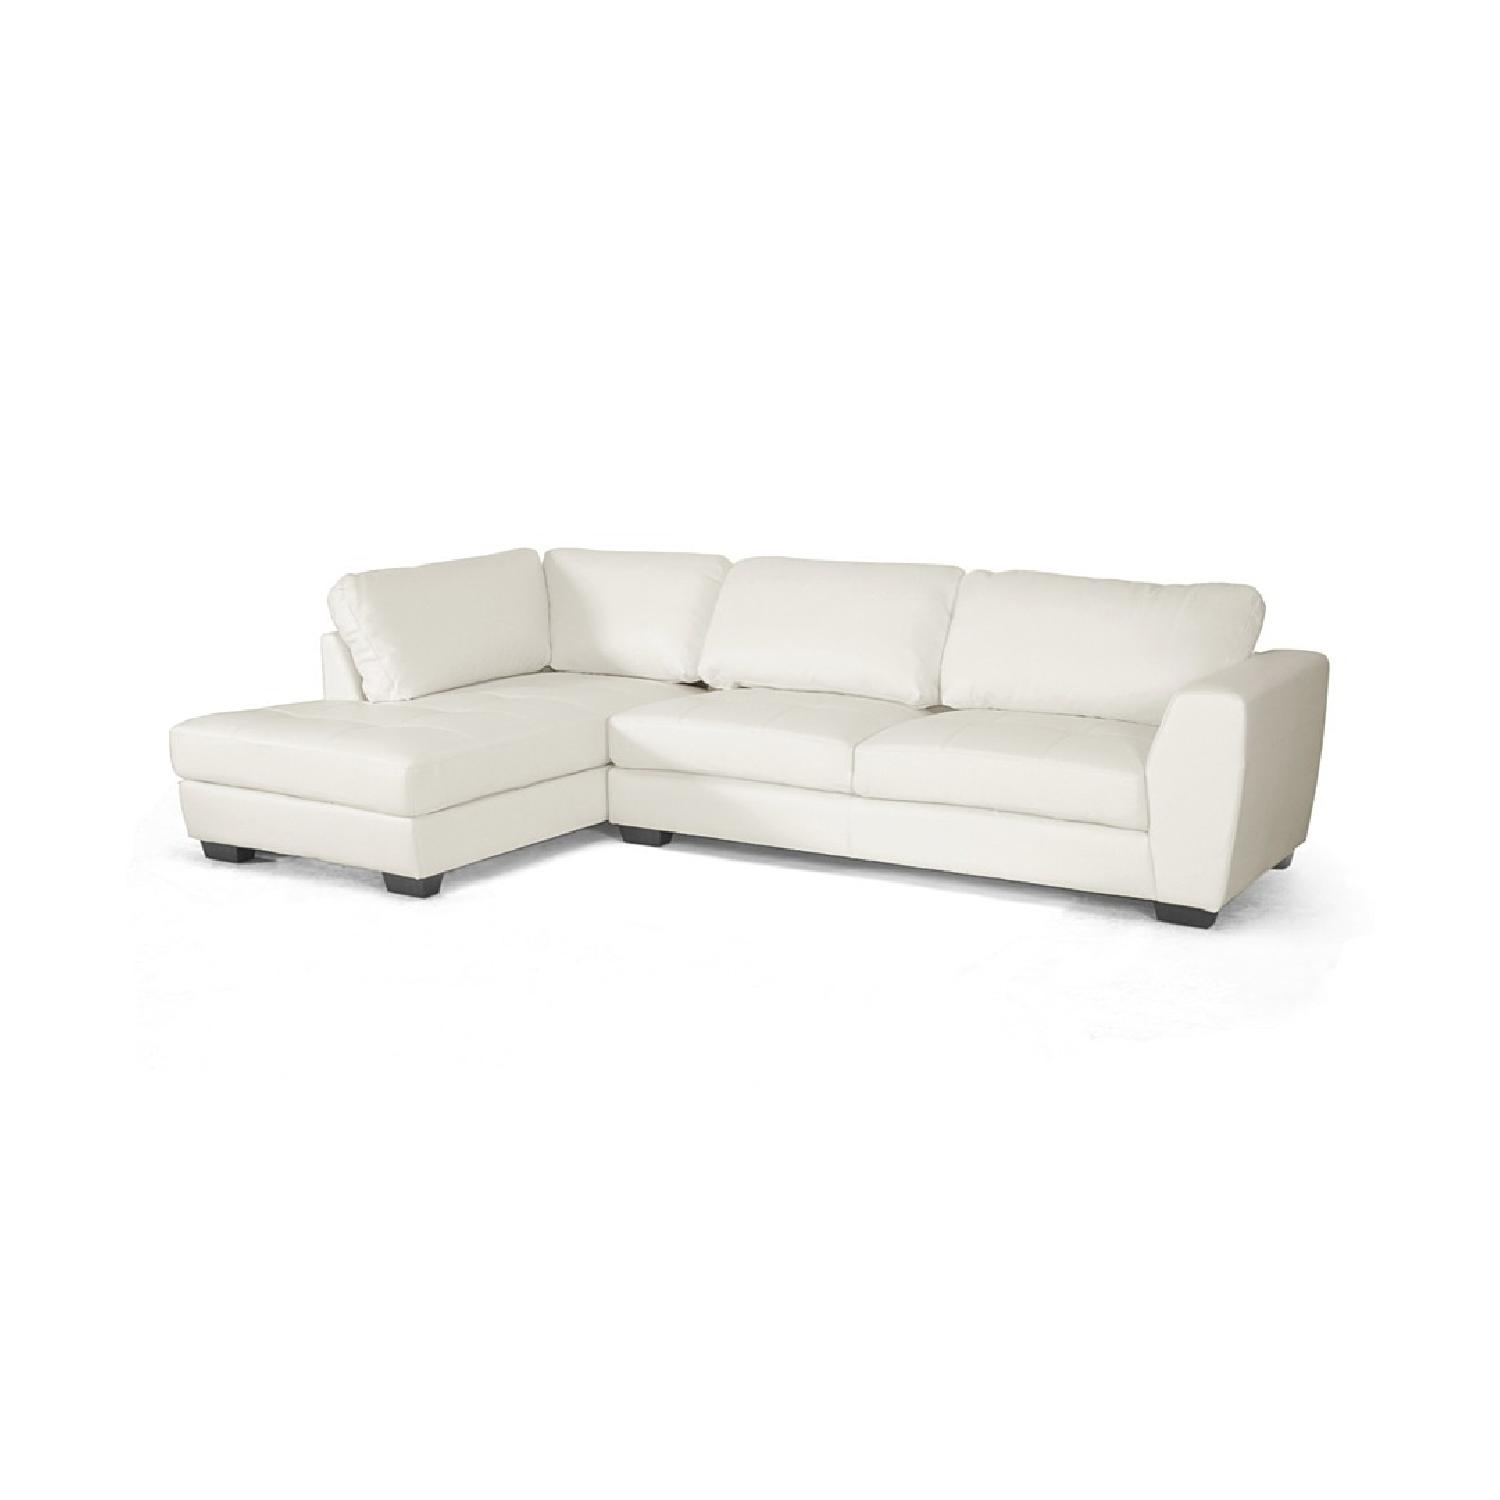 Sofa W Chaise – Home Decor 88 Within Mcculla Sofa Sectionals With Reversible Chaise (View 24 of 25)